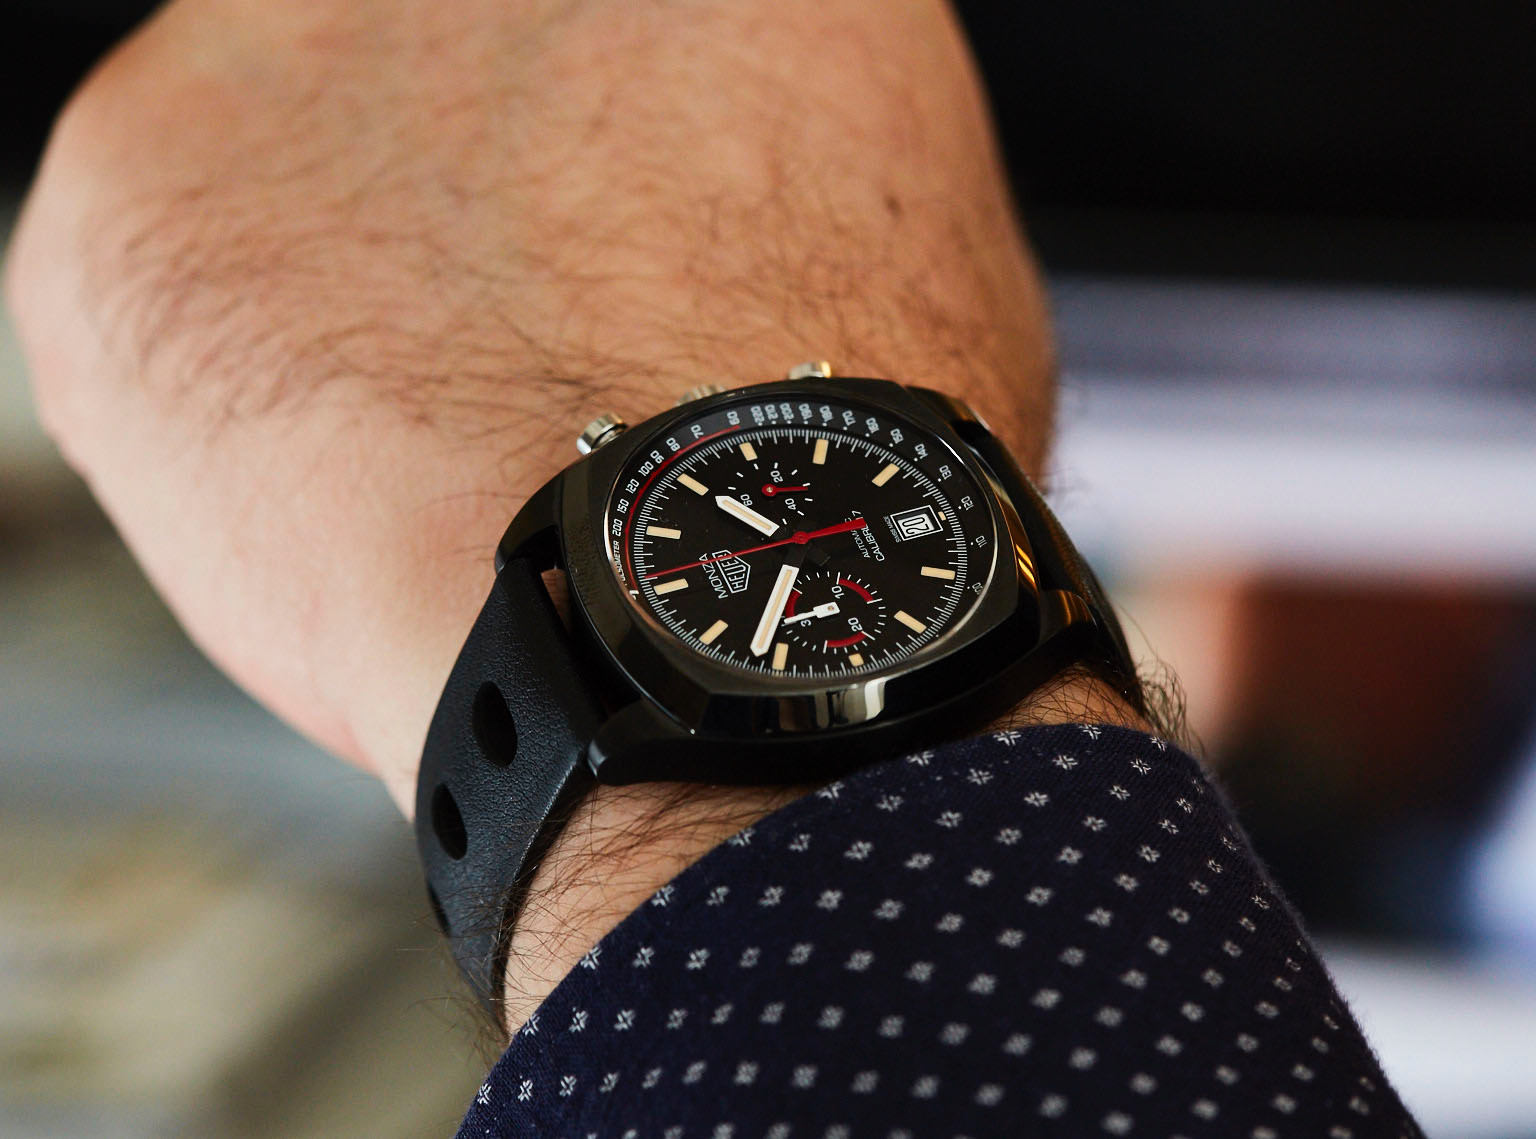 Discover a large selection of tag heuer monza watches on chrono24 - the worldwide marketplace for luxury watches.